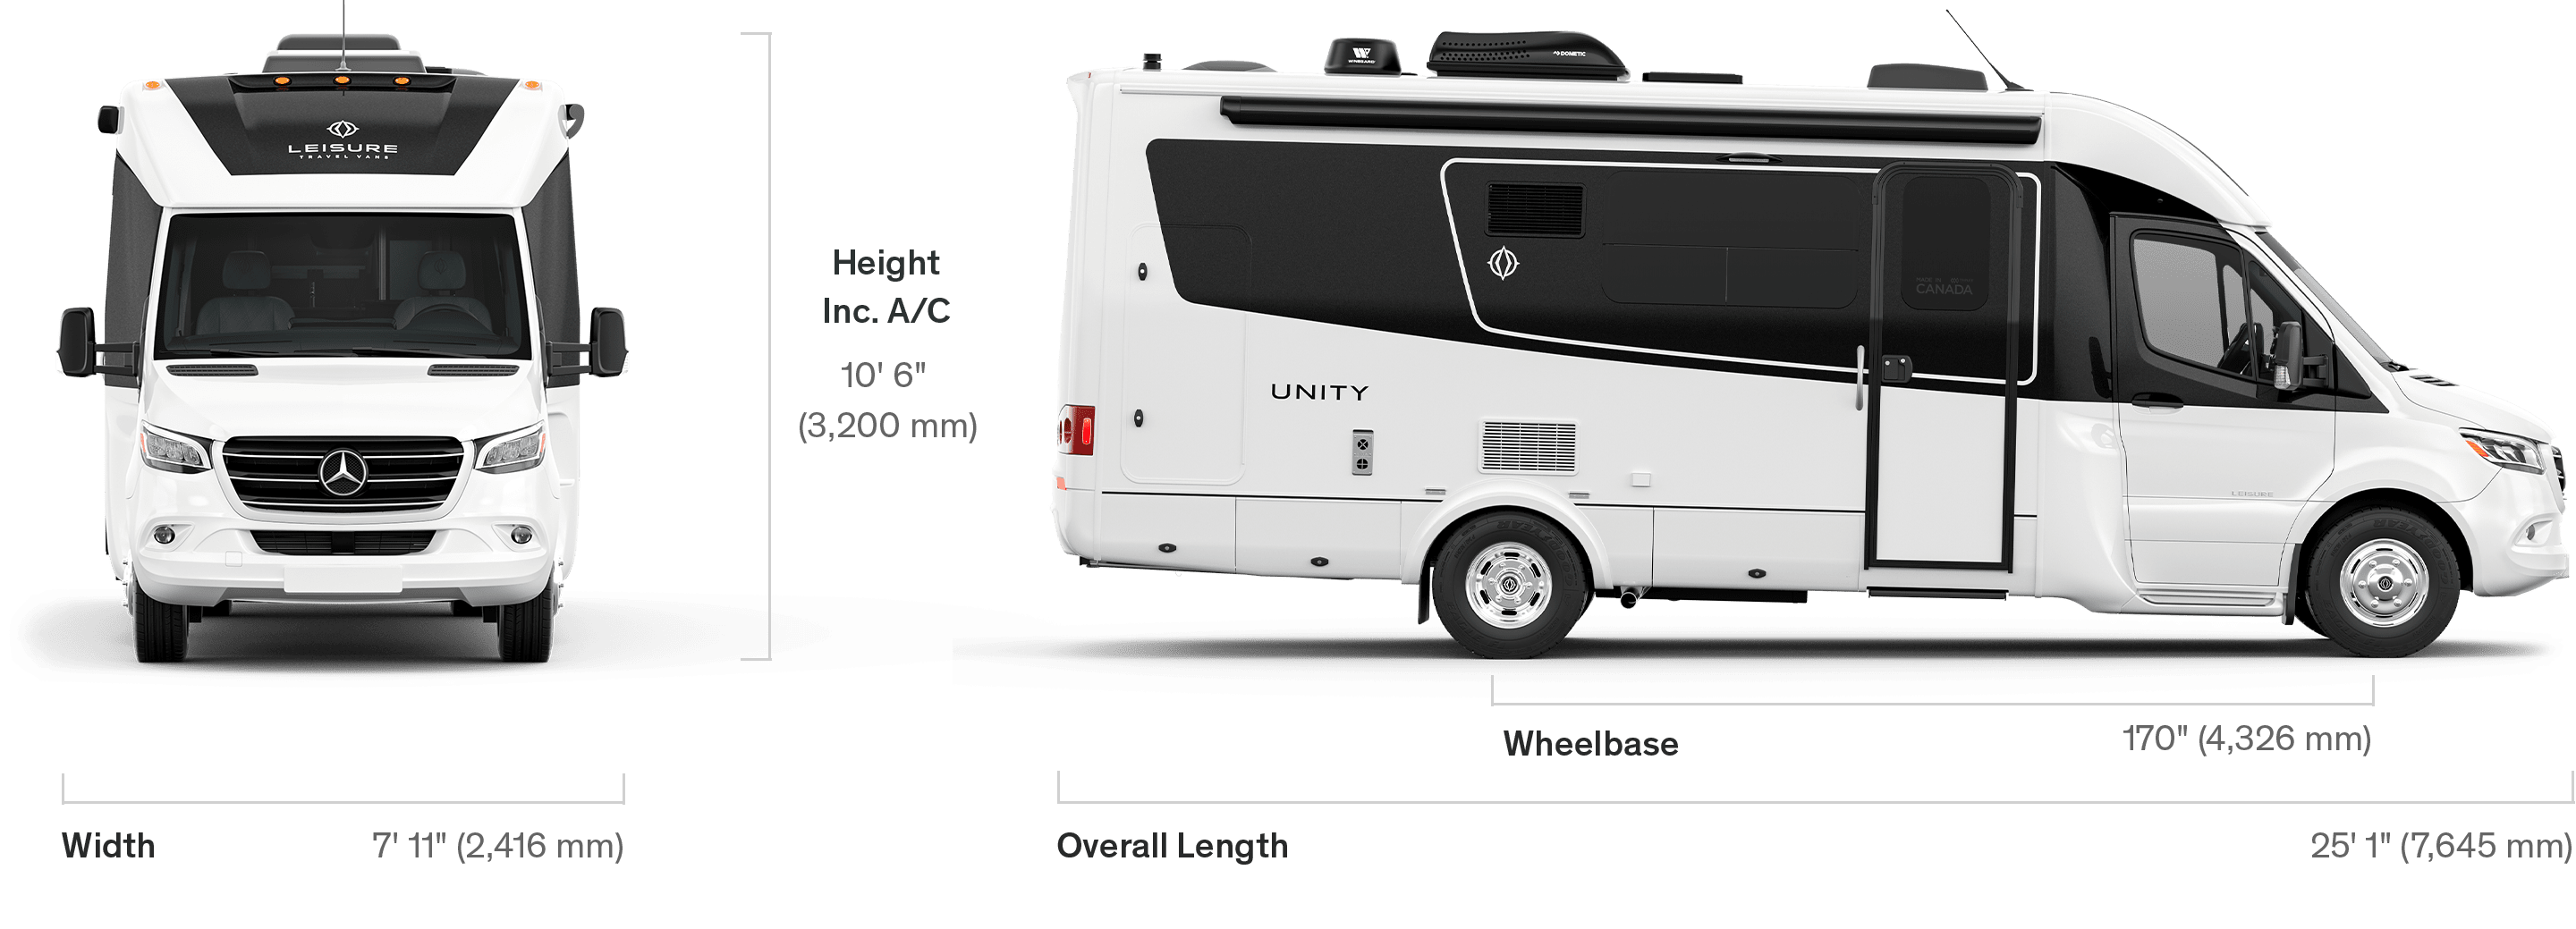 Unity - Specifications - Leisure Travel Vans